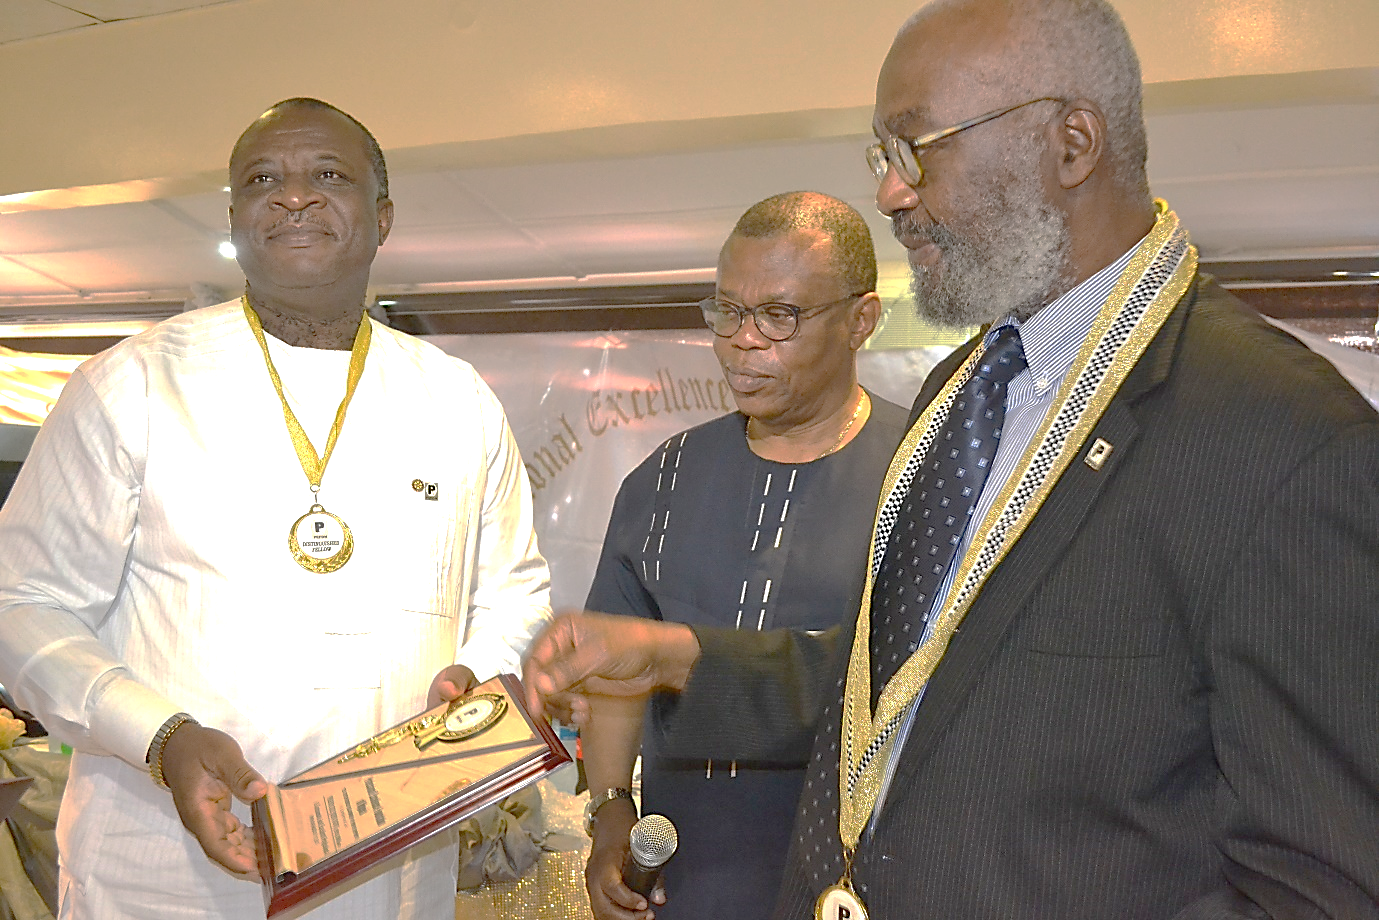 L-R: Pharm. Ike Ugwu, chief executive officer, Pharmacare Support Group receiving a Fellowship award plaque from Sir Ifeanyi Atueyi, PEFON Board of Trustees member while Engr. Ibikunle Oguntayo, representative of Prince Juli Adelusi-Adeluyi, looks on